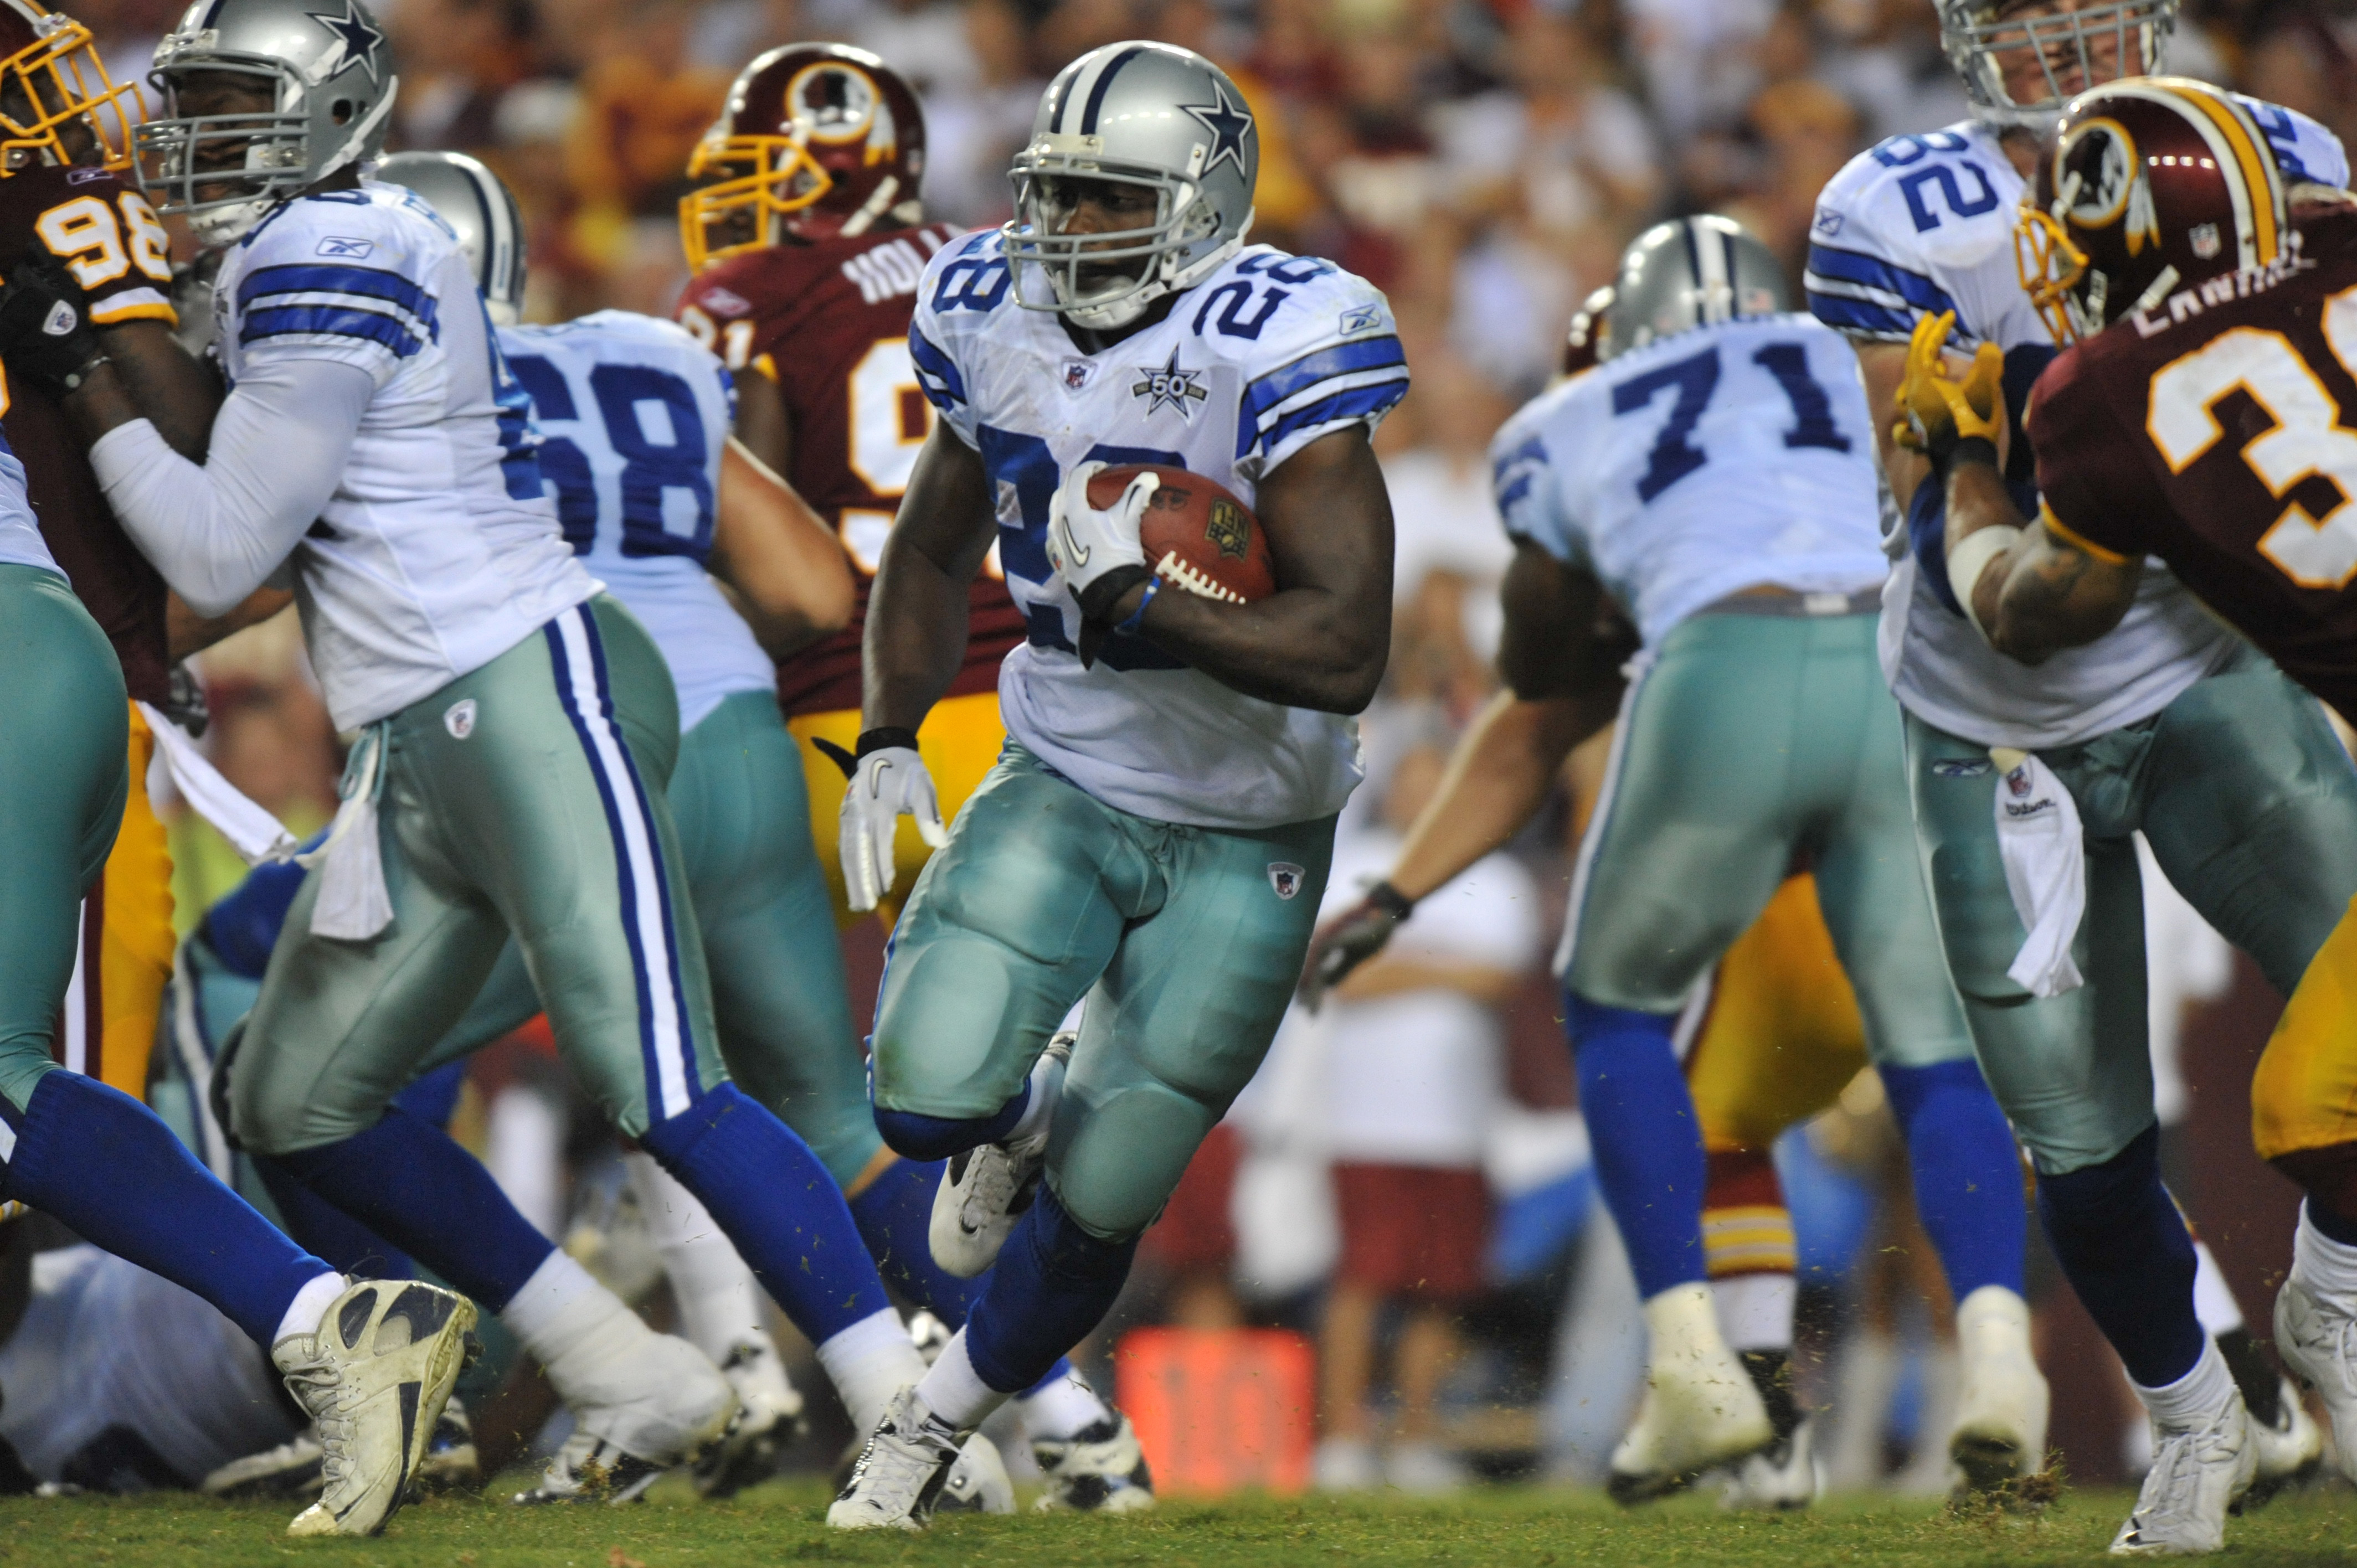 LANDOVER - SEPTEMBER 12:  Felix Jones #28 of the Dallas Cowboys runs the ball during the NFL season opener against the Washington Redskins at FedExField on September 12, 2010 in Landover, Maryland. The Redskins defeated the Cowboys 13-7. (Photo by Larry F